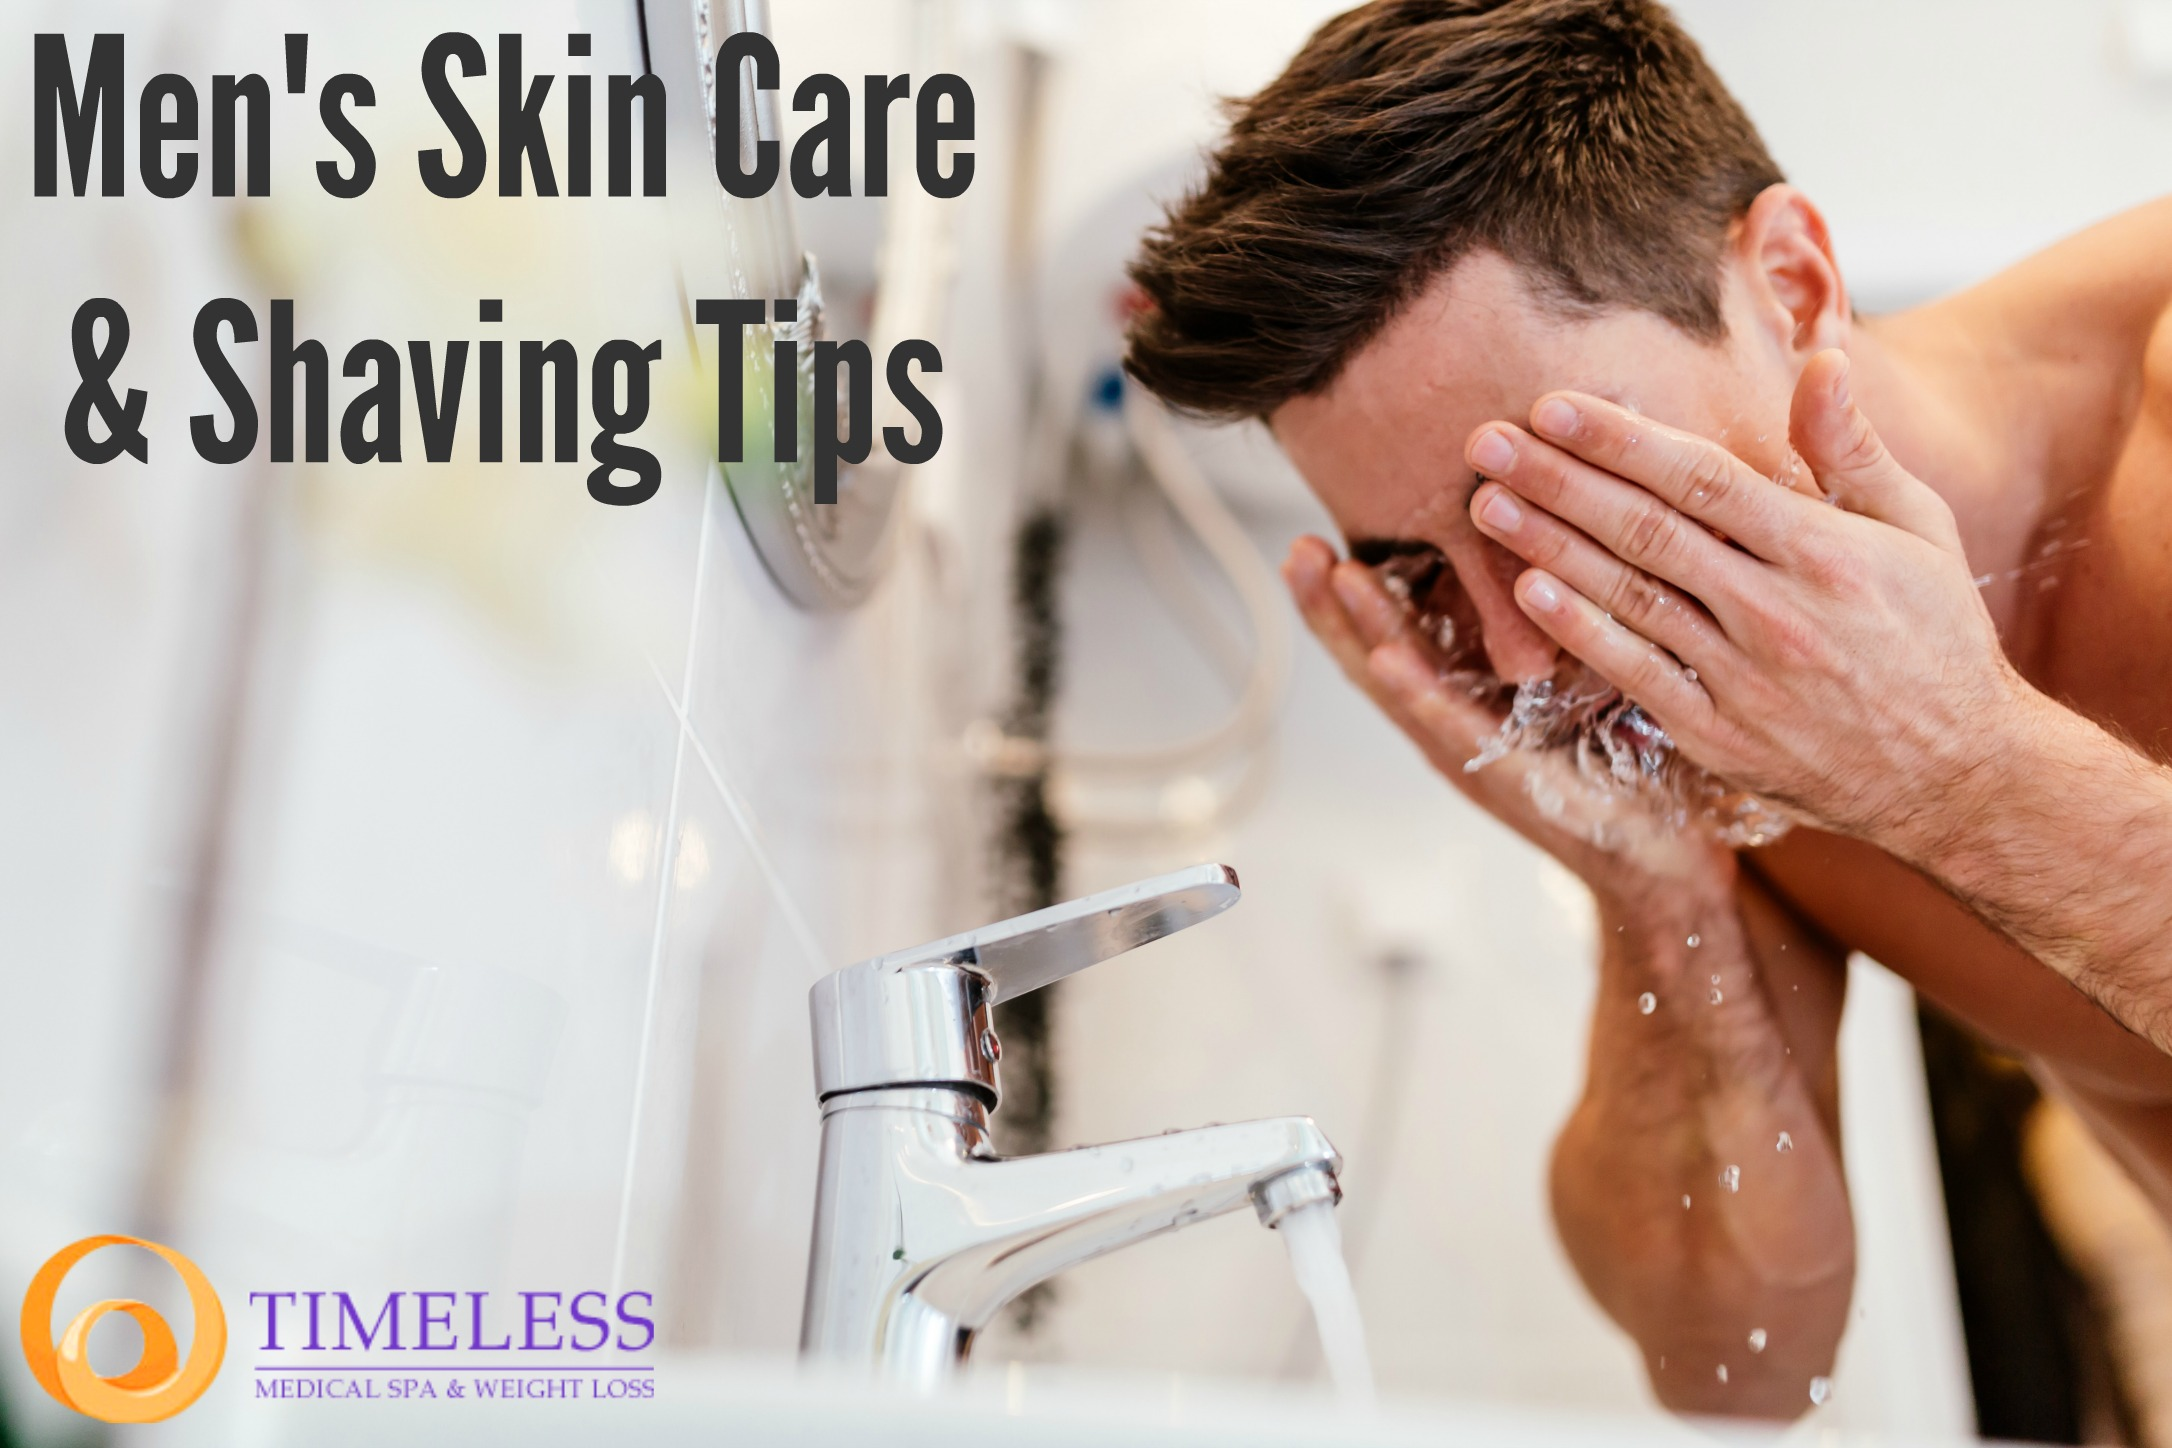 Men's Skin Care and Shaving Tips